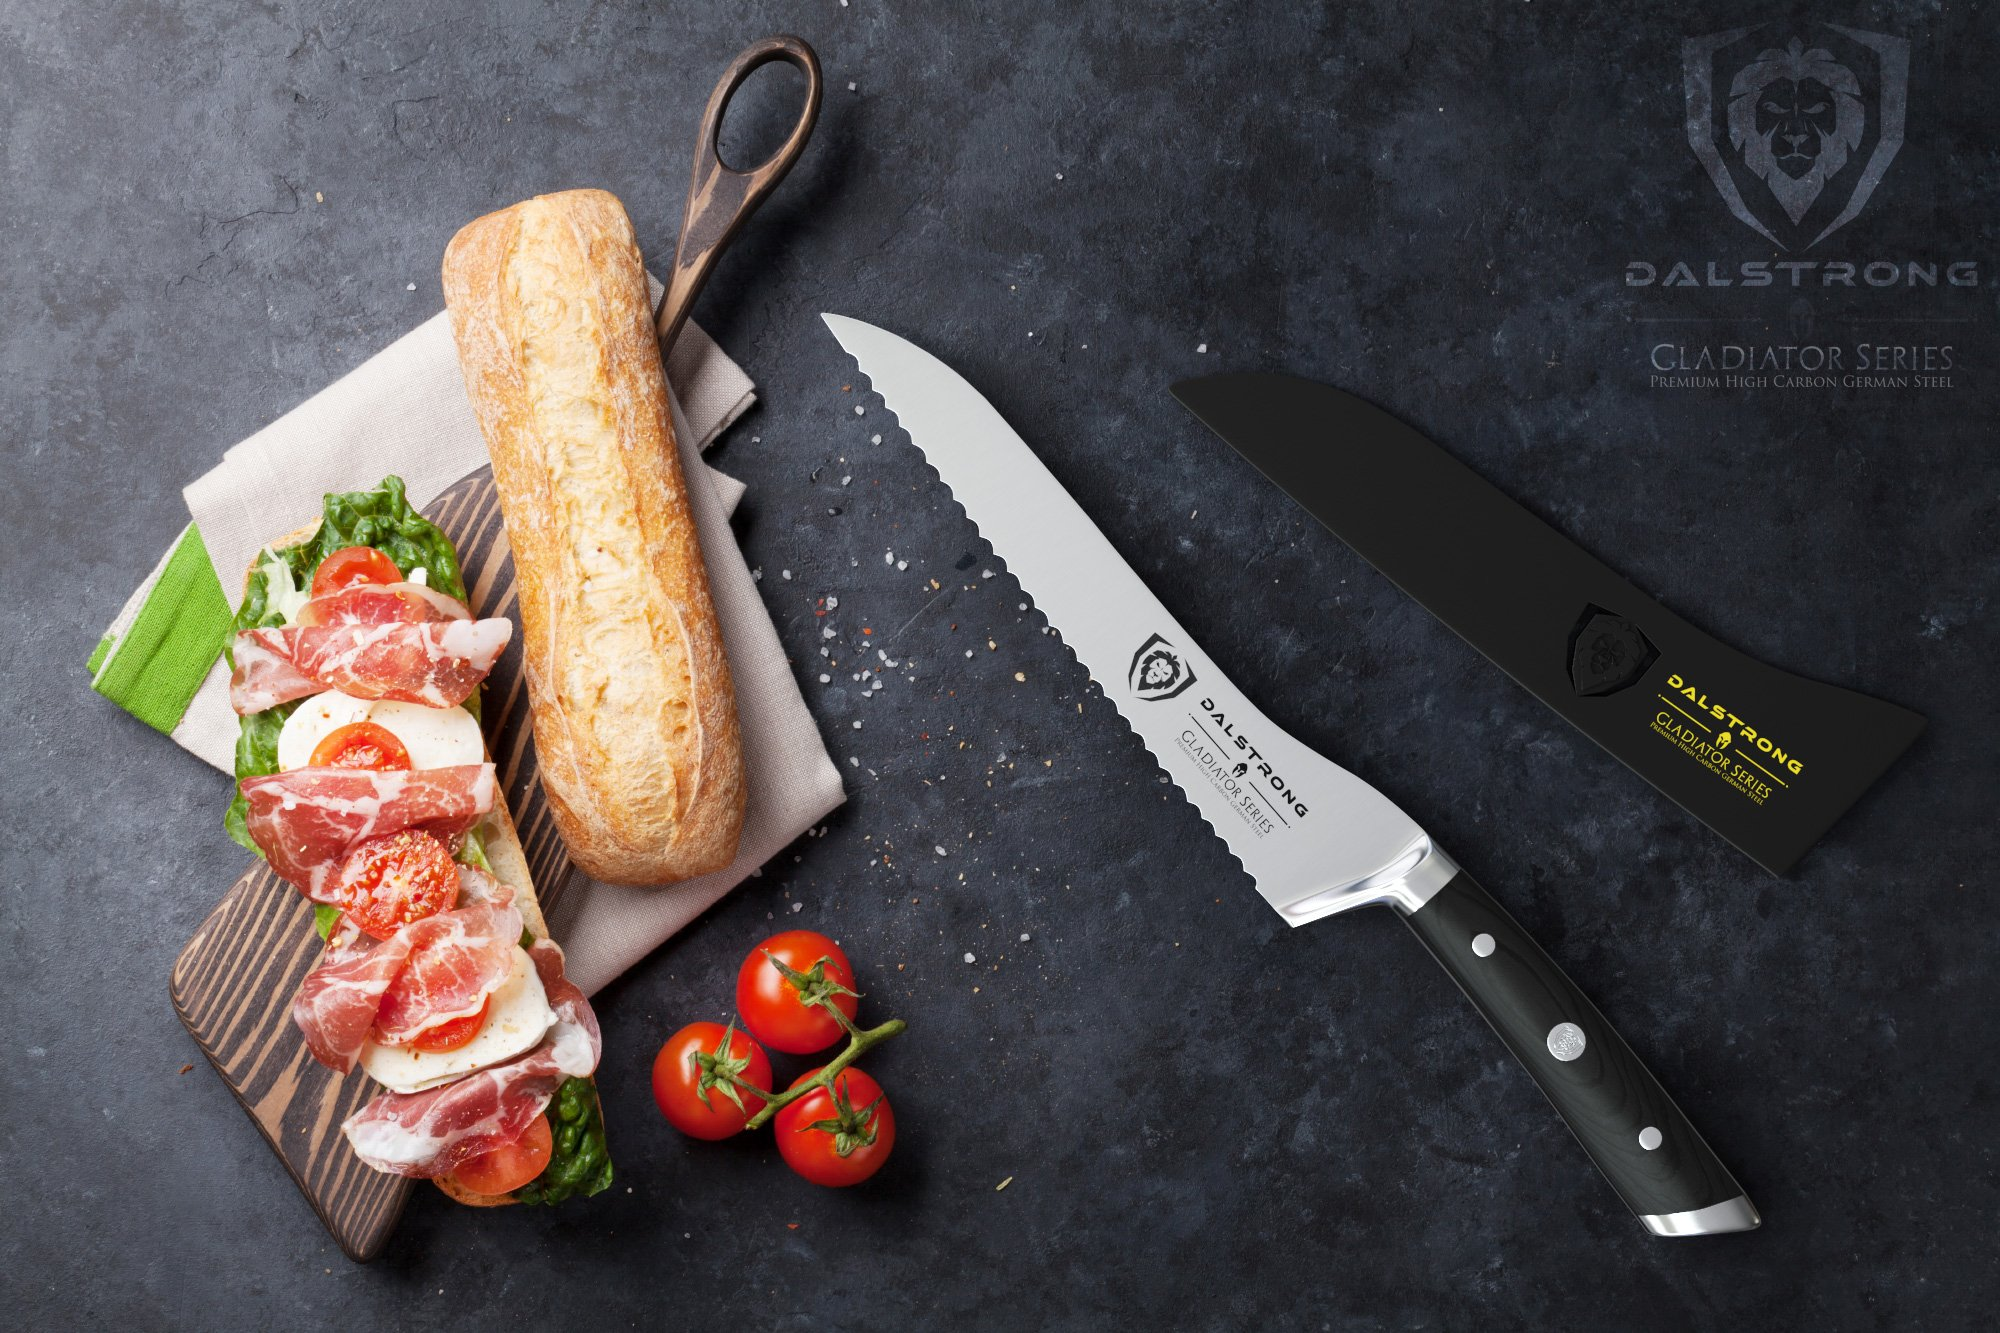 DALSTRONG Serrated Offset Bread & Deli Knife - Gladiator Series- 8''- German HC Steel - Guard Included by Dalstrong (Image #5)